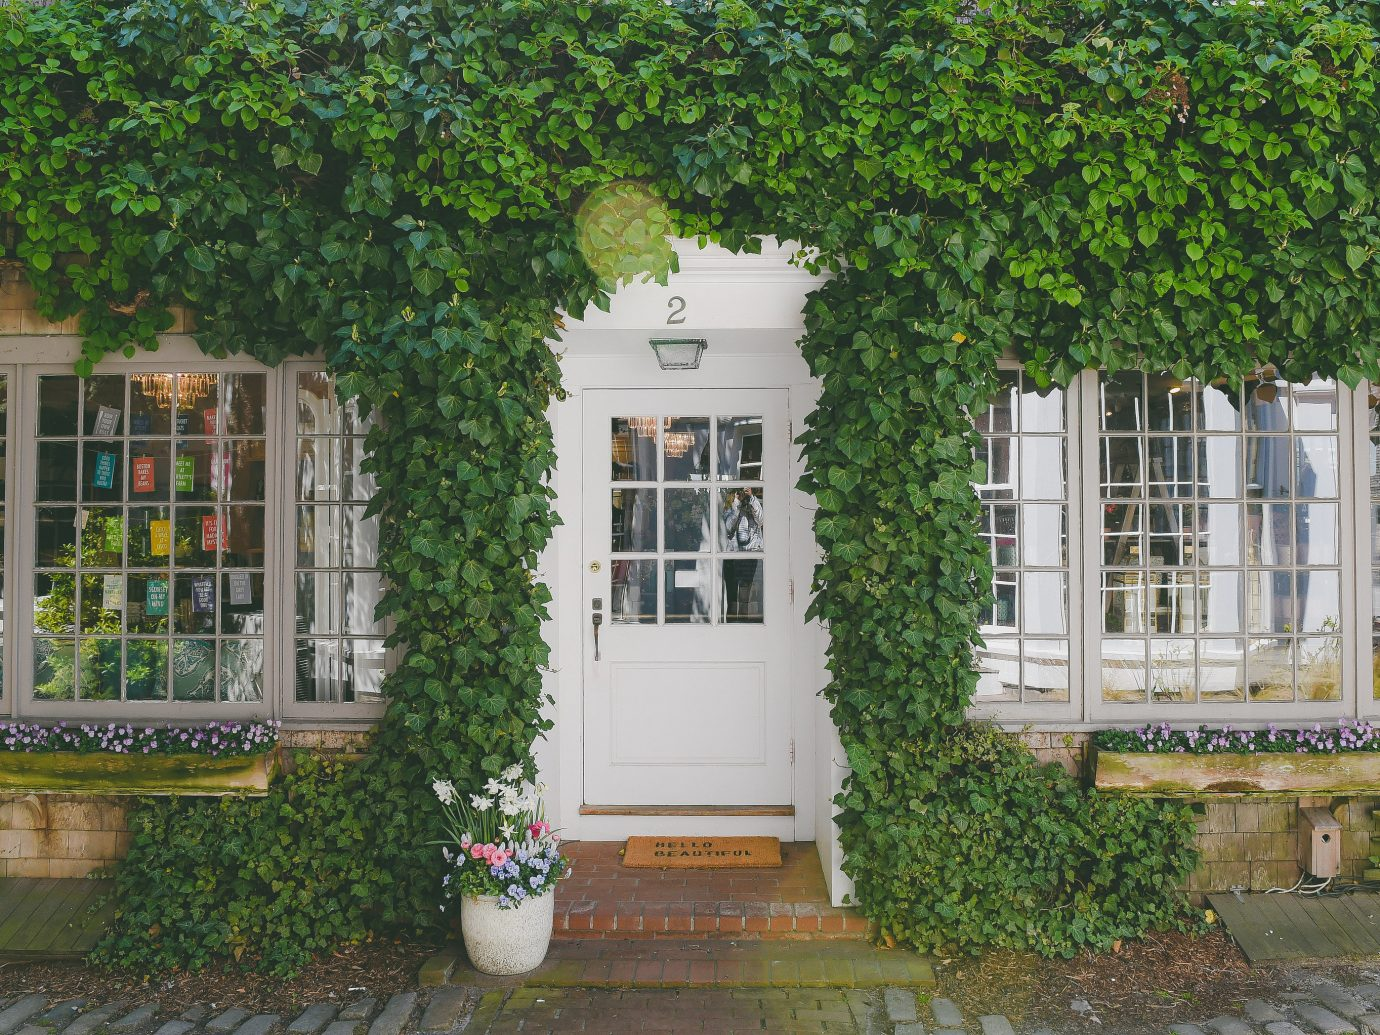 Boutique Hotels Health + Wellness Hotels Trip Ideas tree outdoor property house home building neighbourhood real estate window facade estate Garden Courtyard plant outdoor structure cottage backyard yard landscaping stone bushes